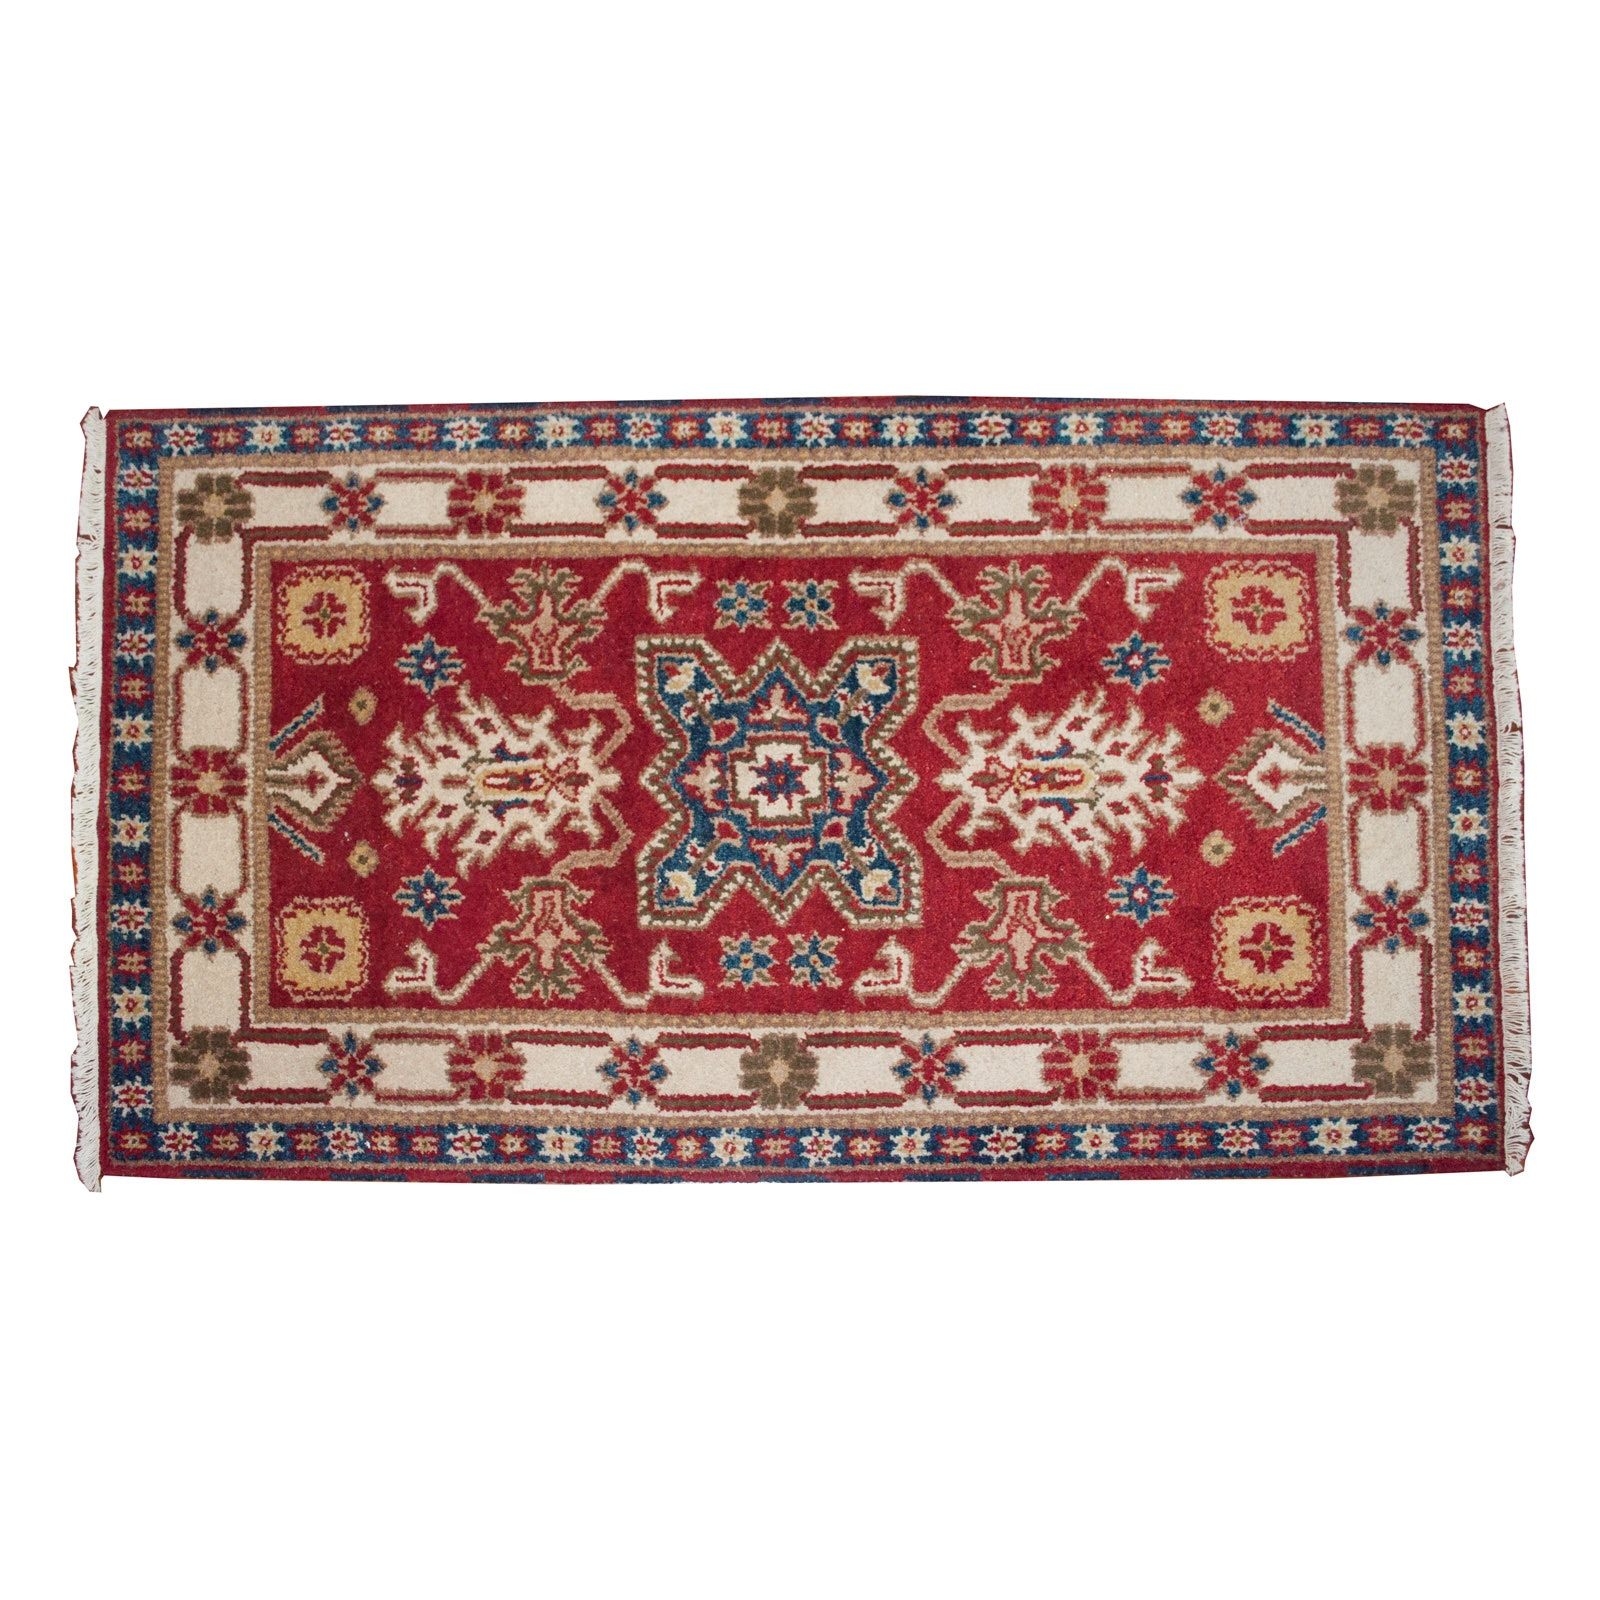 Hand-Knotted Indo-Caucasian Karabagh Style Wool Accent Rug